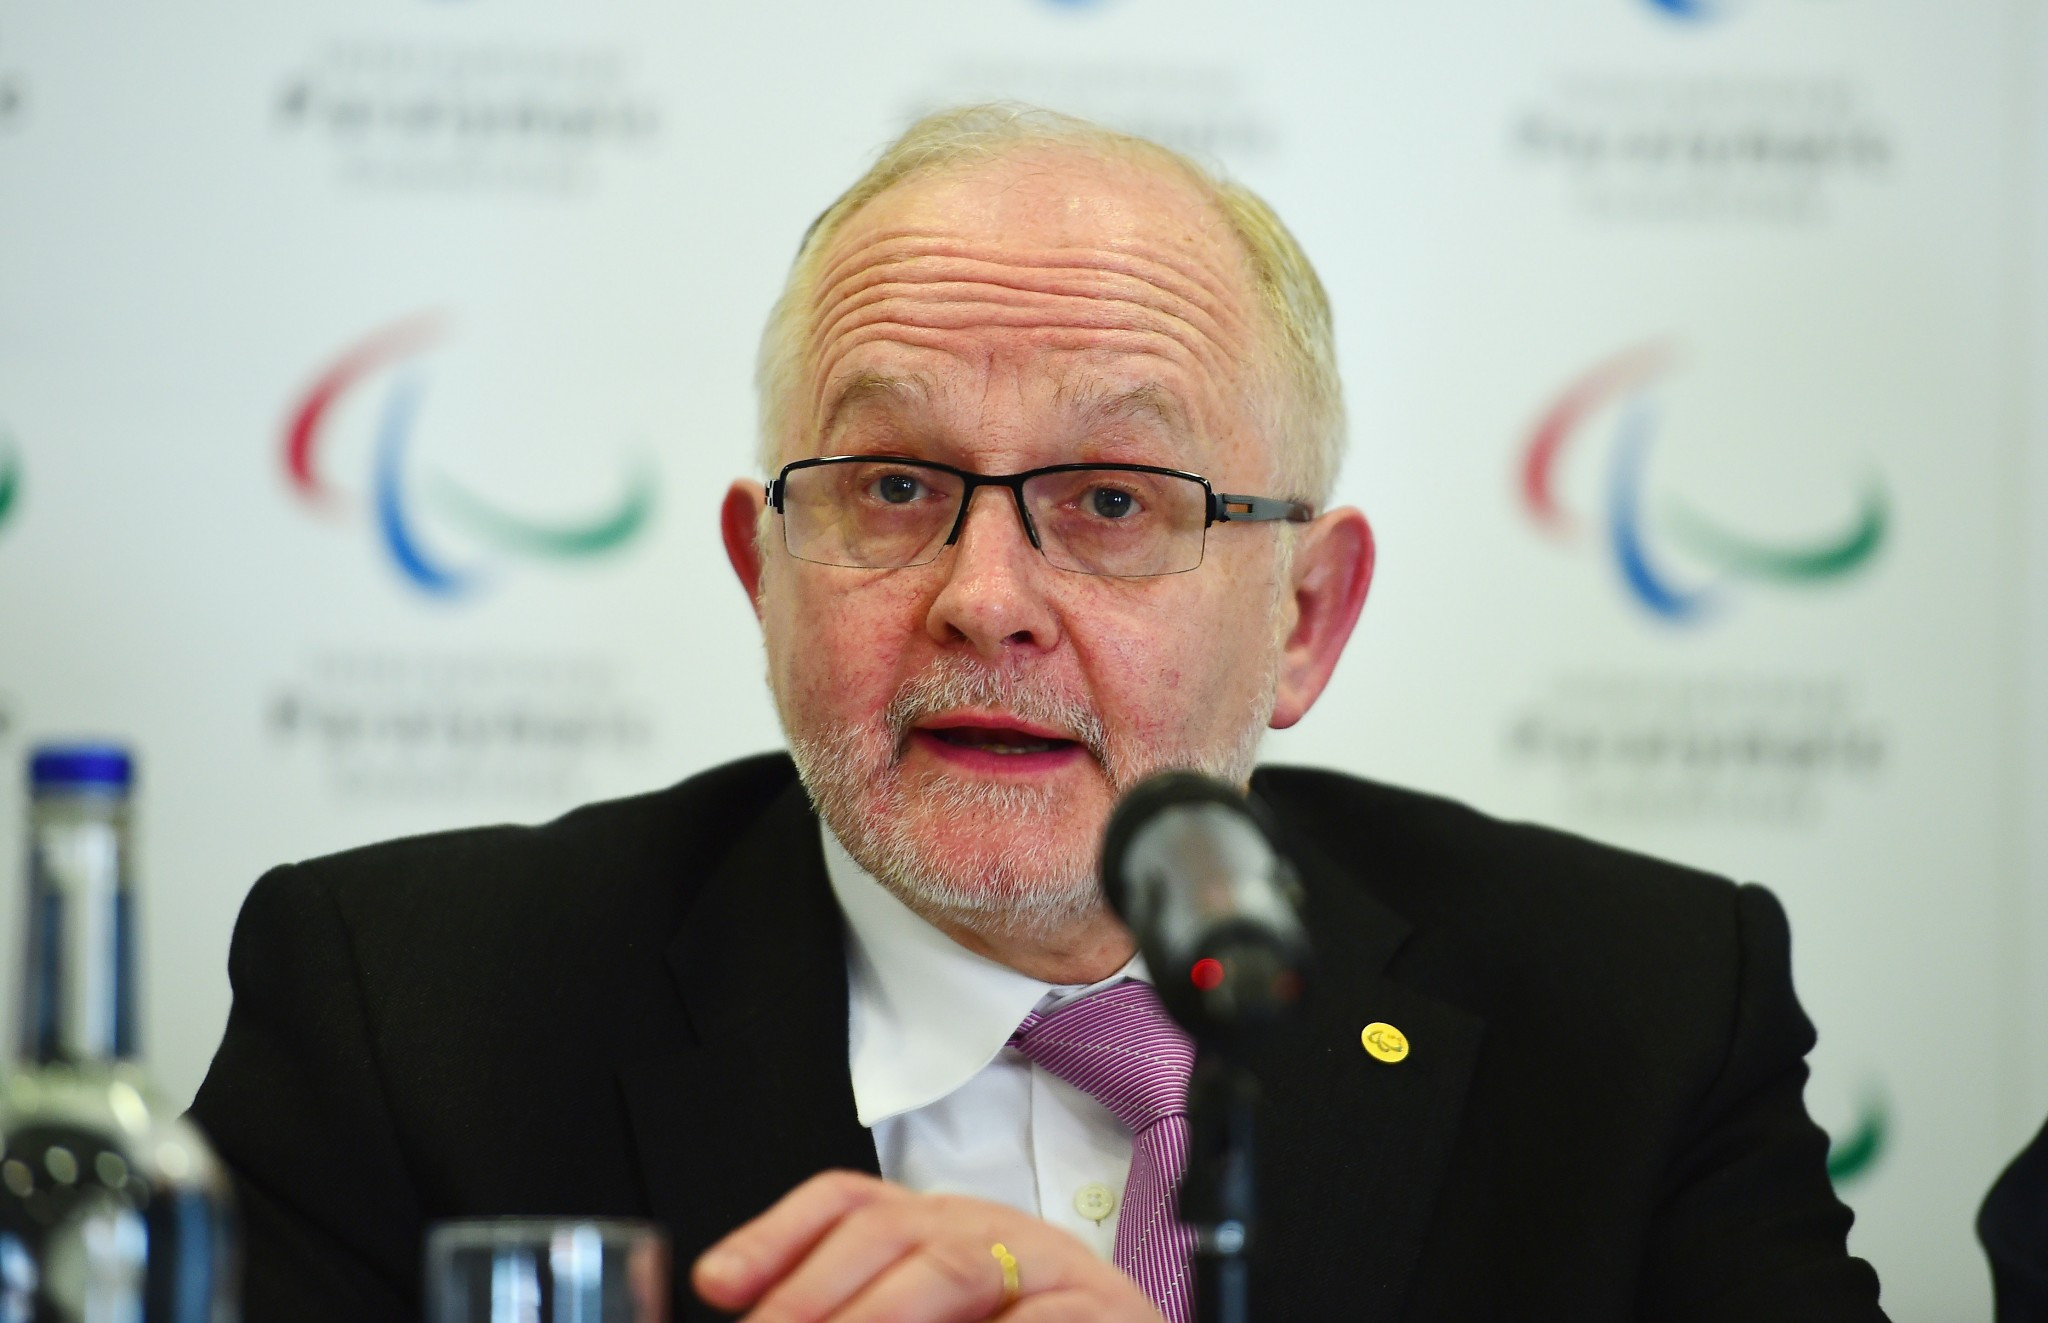 Sir Philip Craven's 16-year tenure as IPC President is coming to an end ©Getty Images